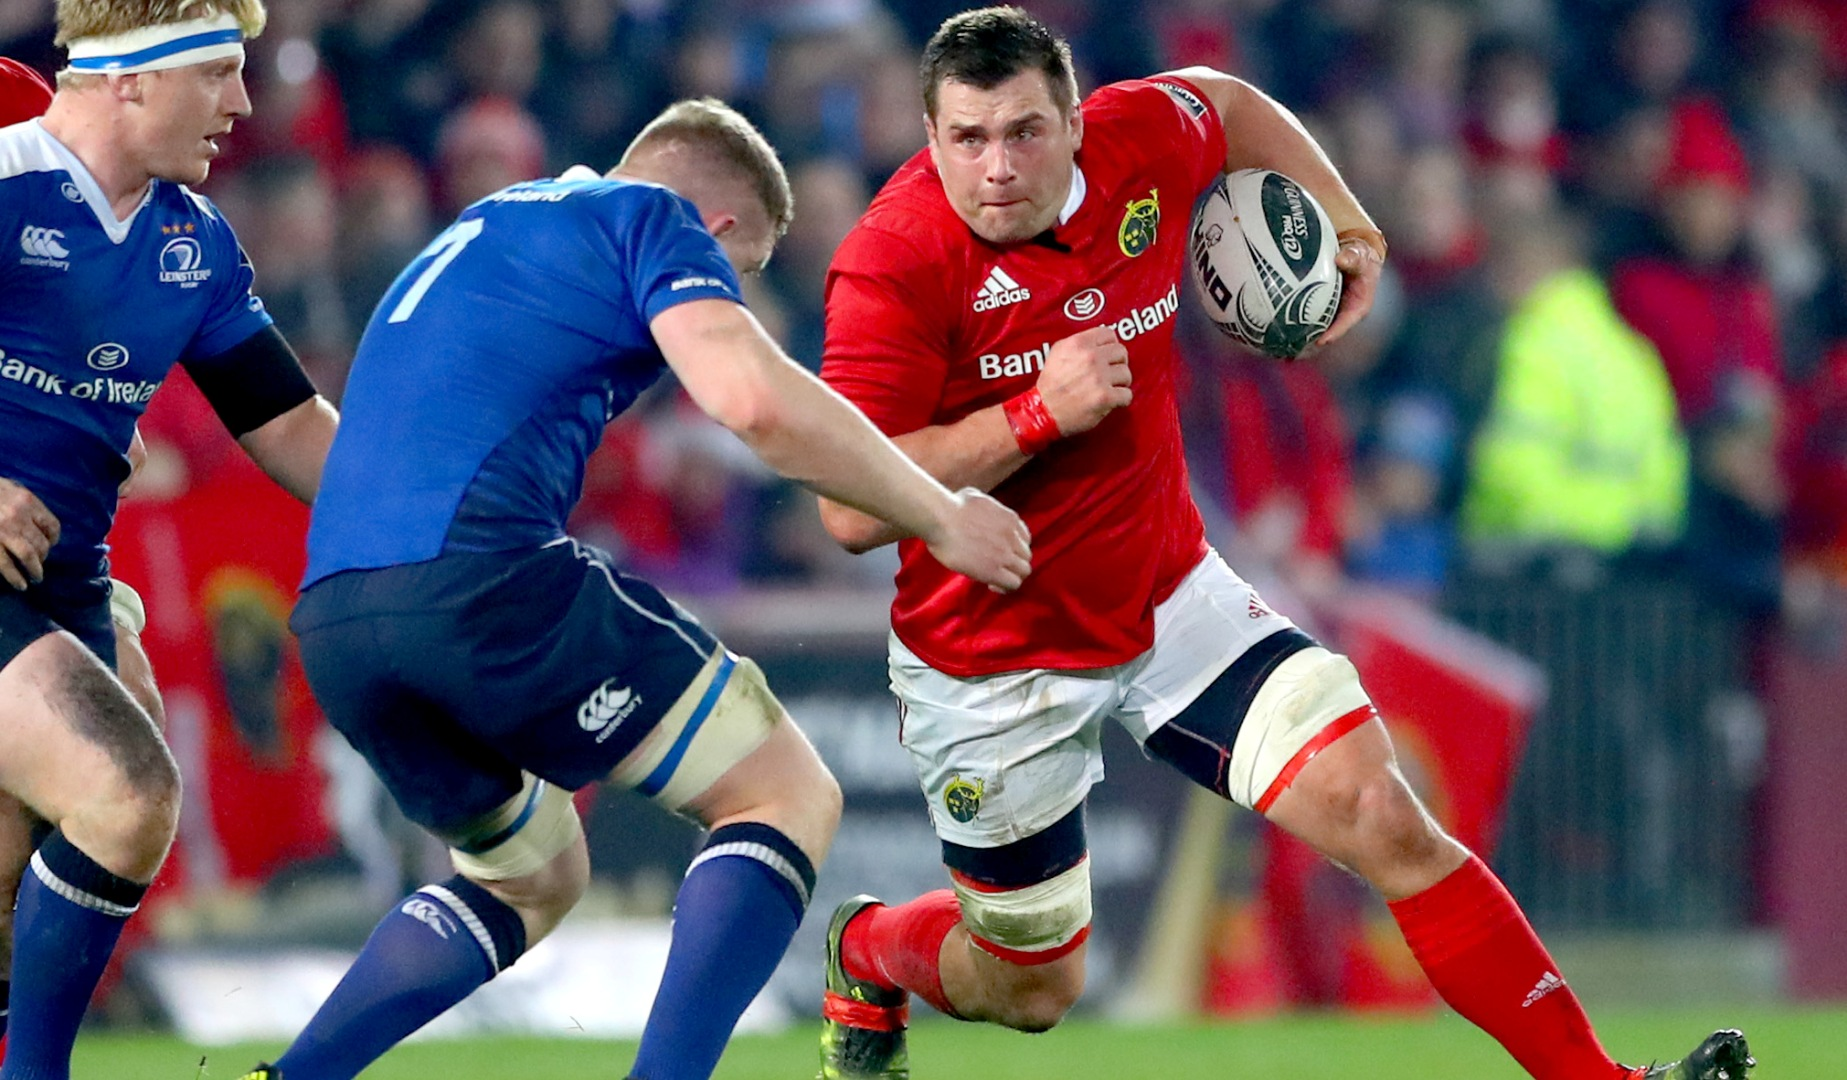 LionsWatch: Murray and Stander key to Munster's interpro triumph